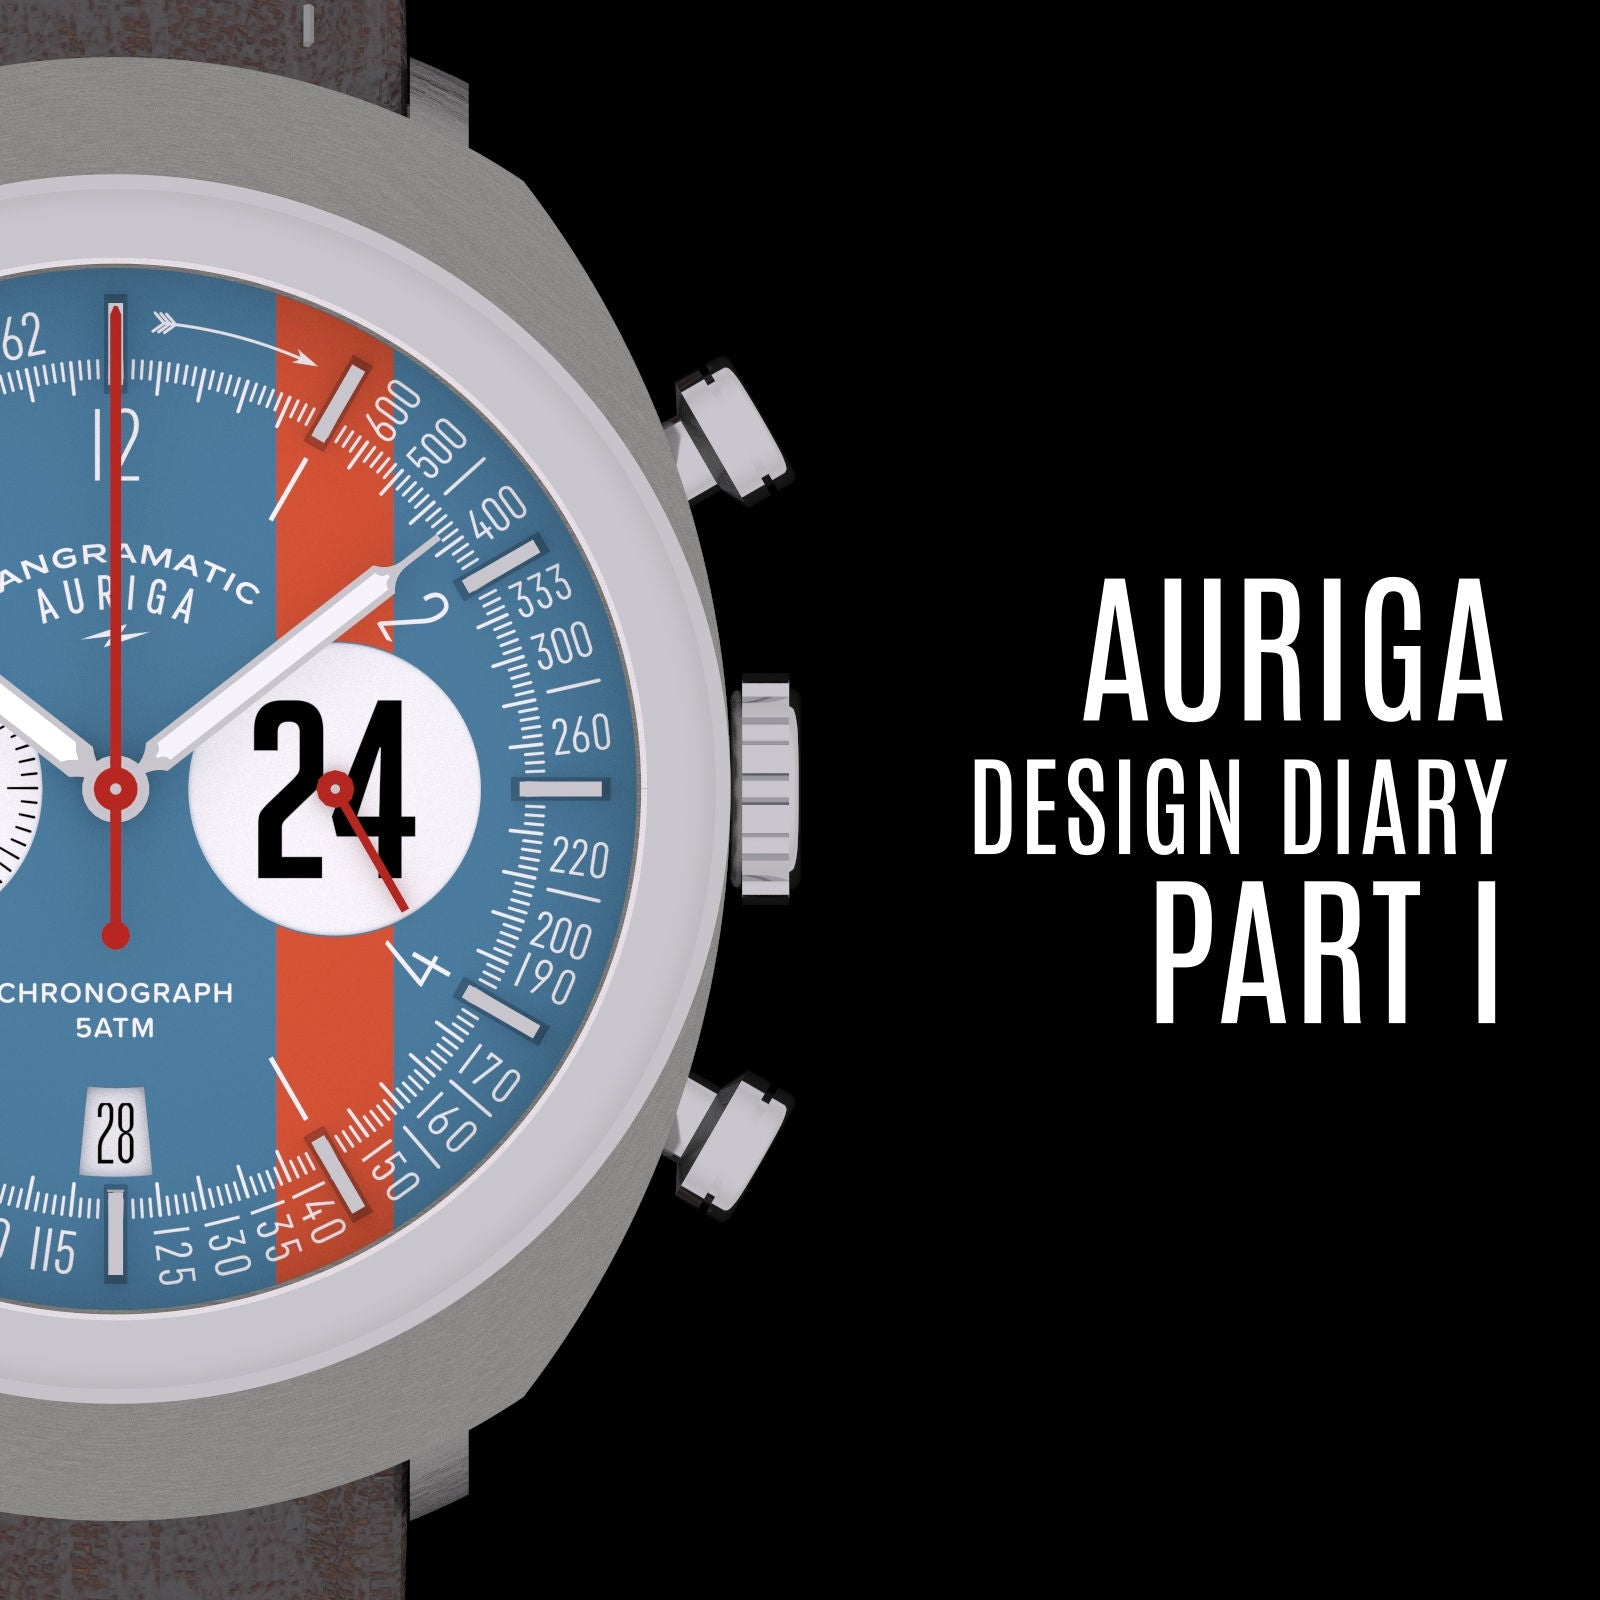 Auriga: Design Diary Part I